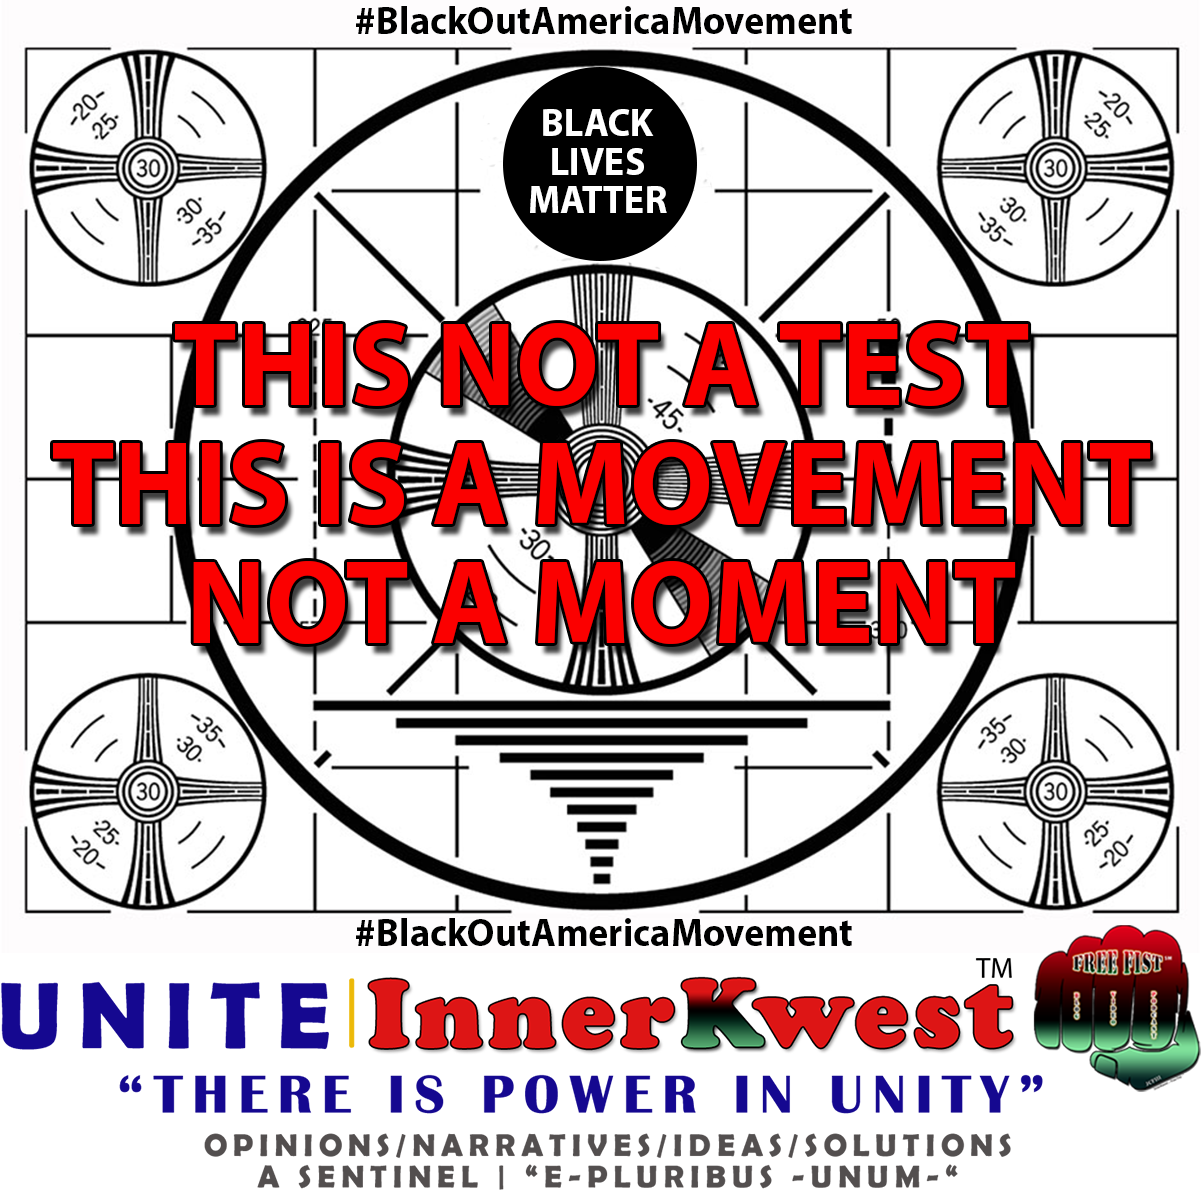 This is a movement not a moment